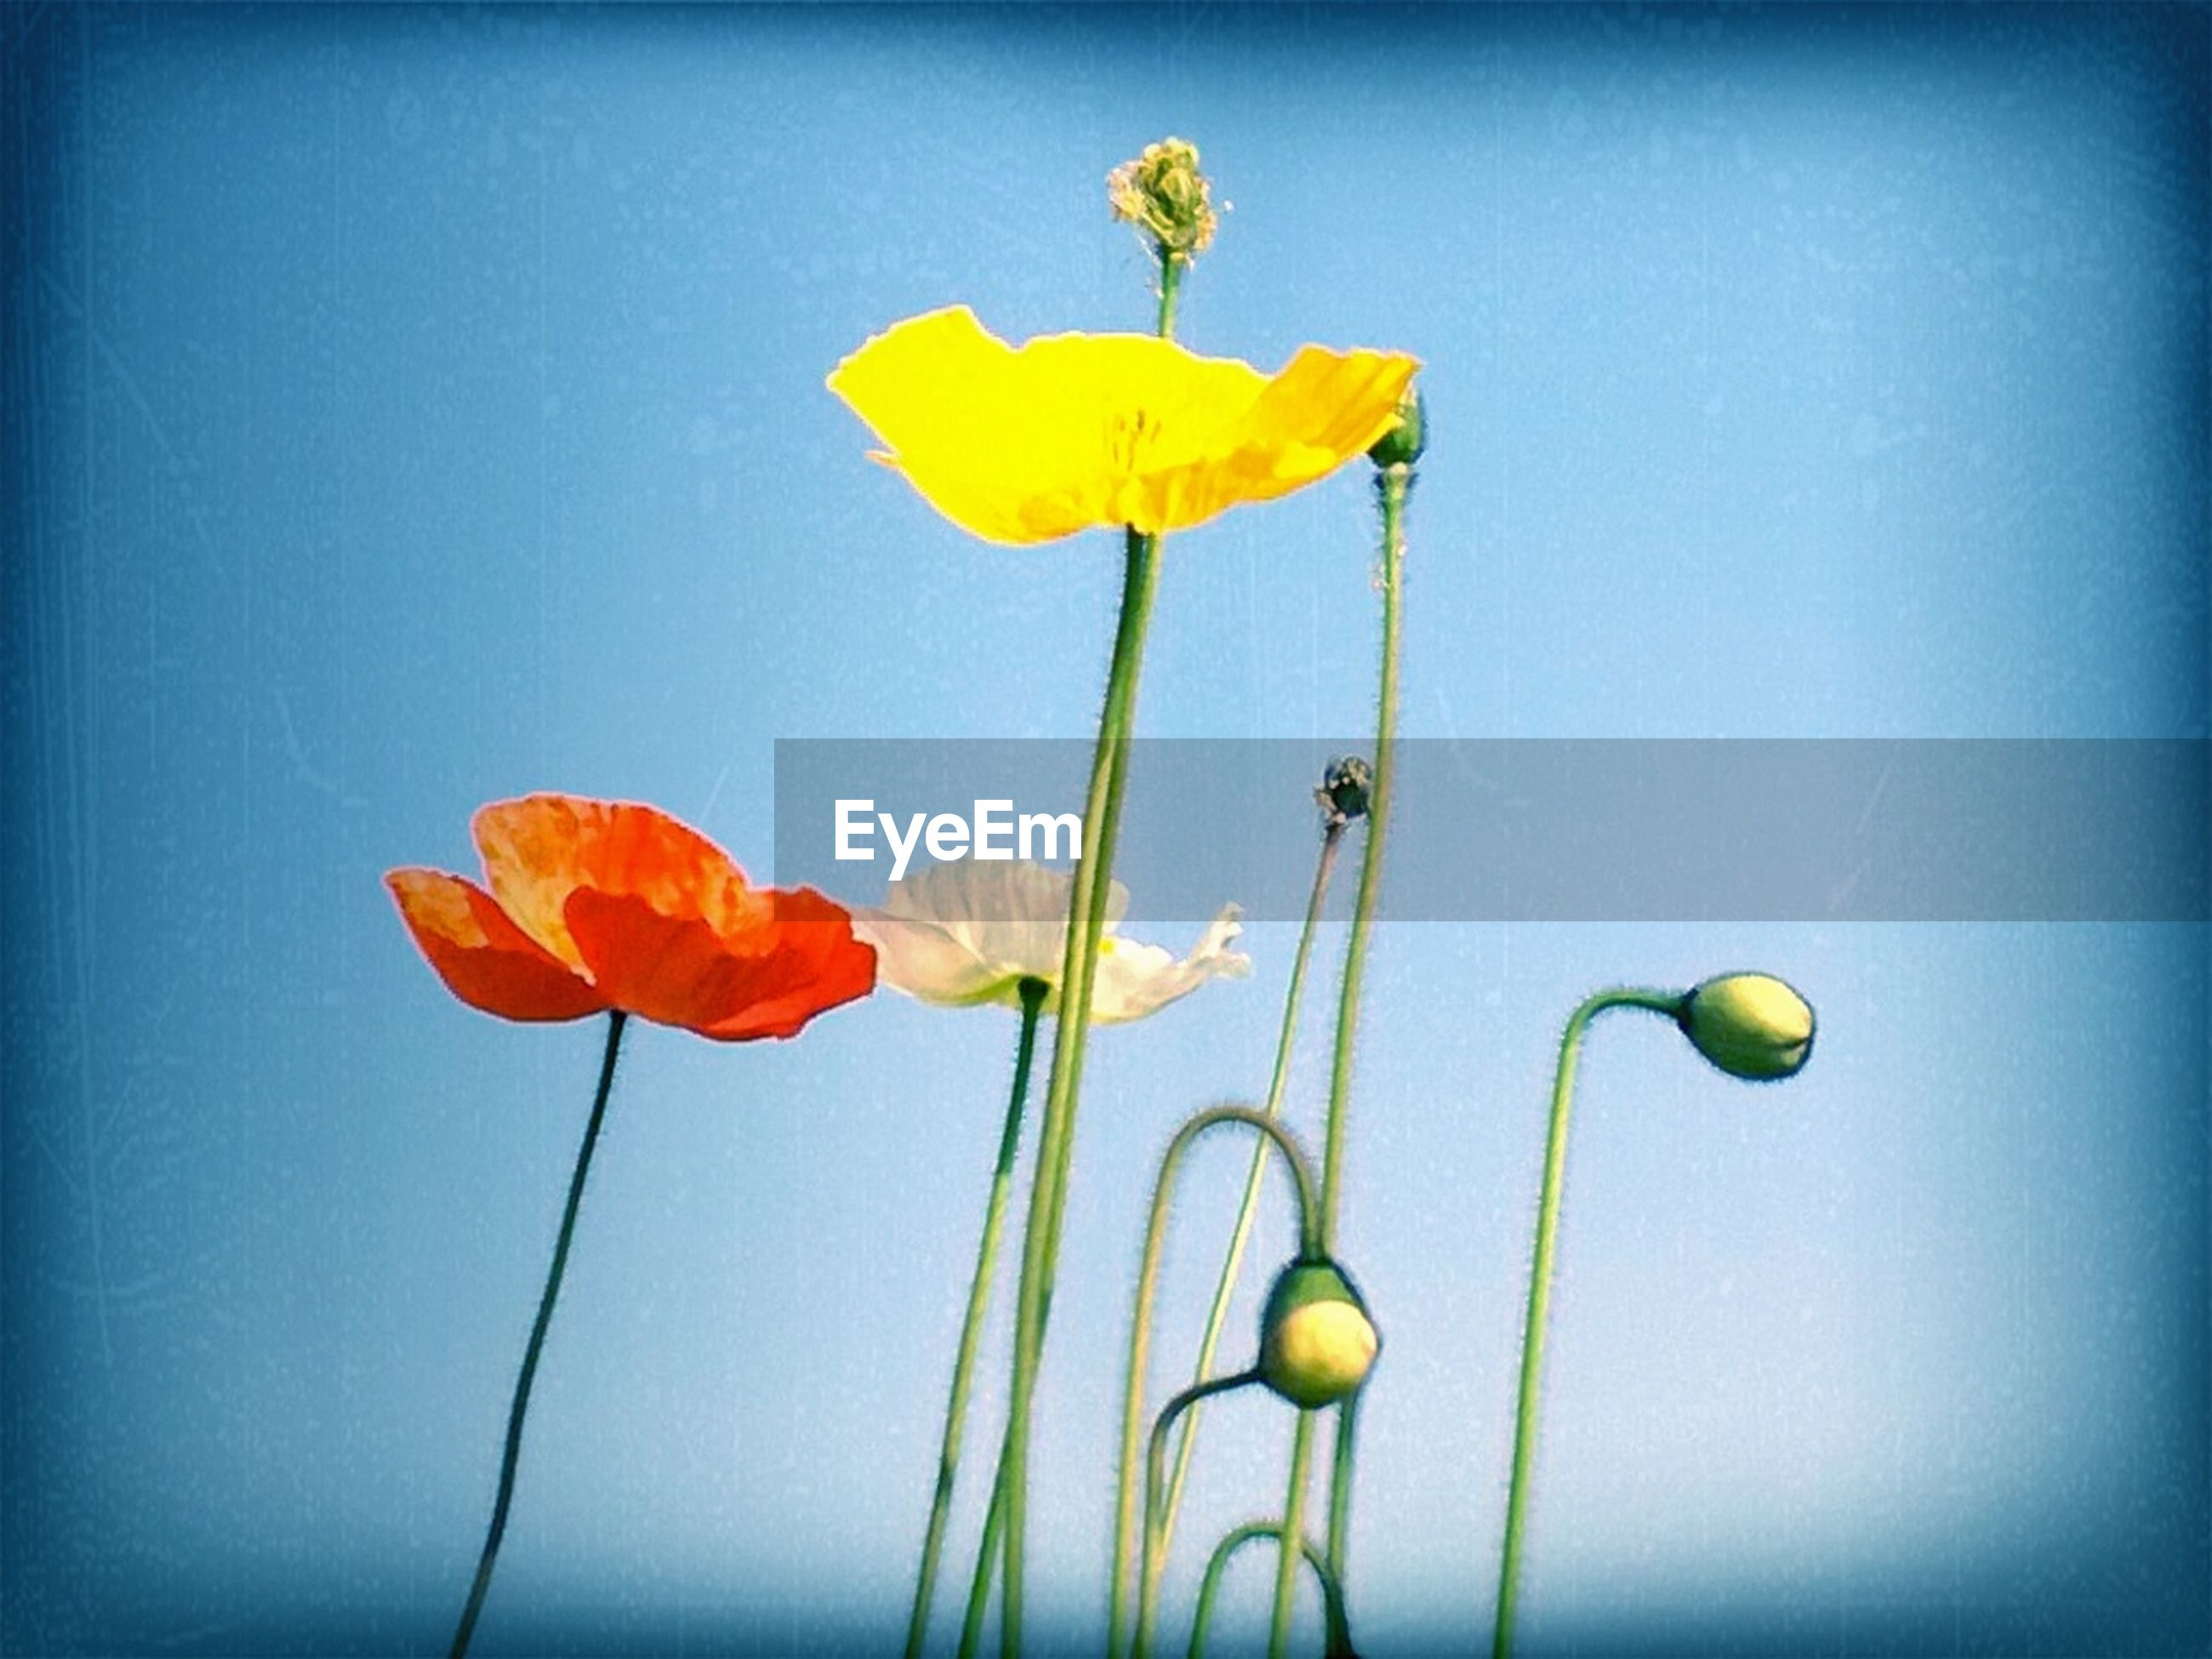 flower, freshness, fragility, stem, petal, growth, flower head, yellow, tulip, beauty in nature, nature, bud, plant, poppy, close-up, red, blue, single flower, copy space, clear sky